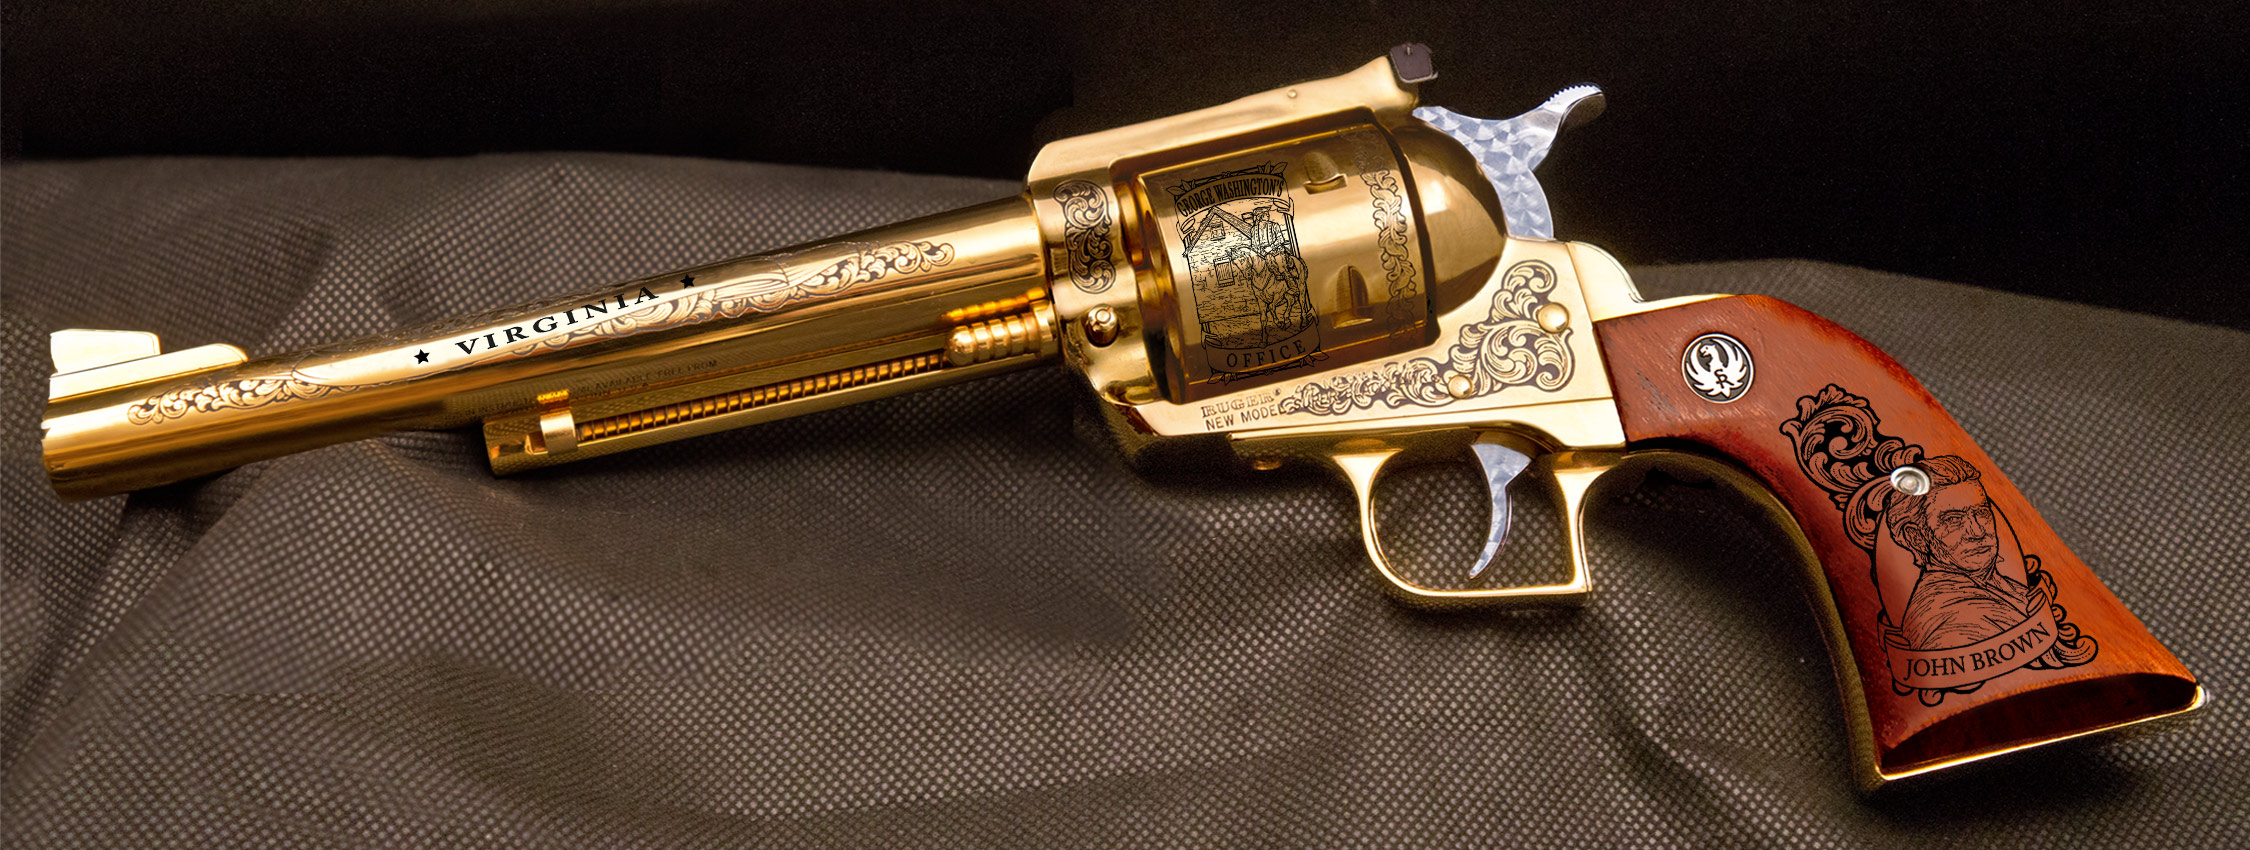 Winchester Heritage Revolver American Legacy Firearms